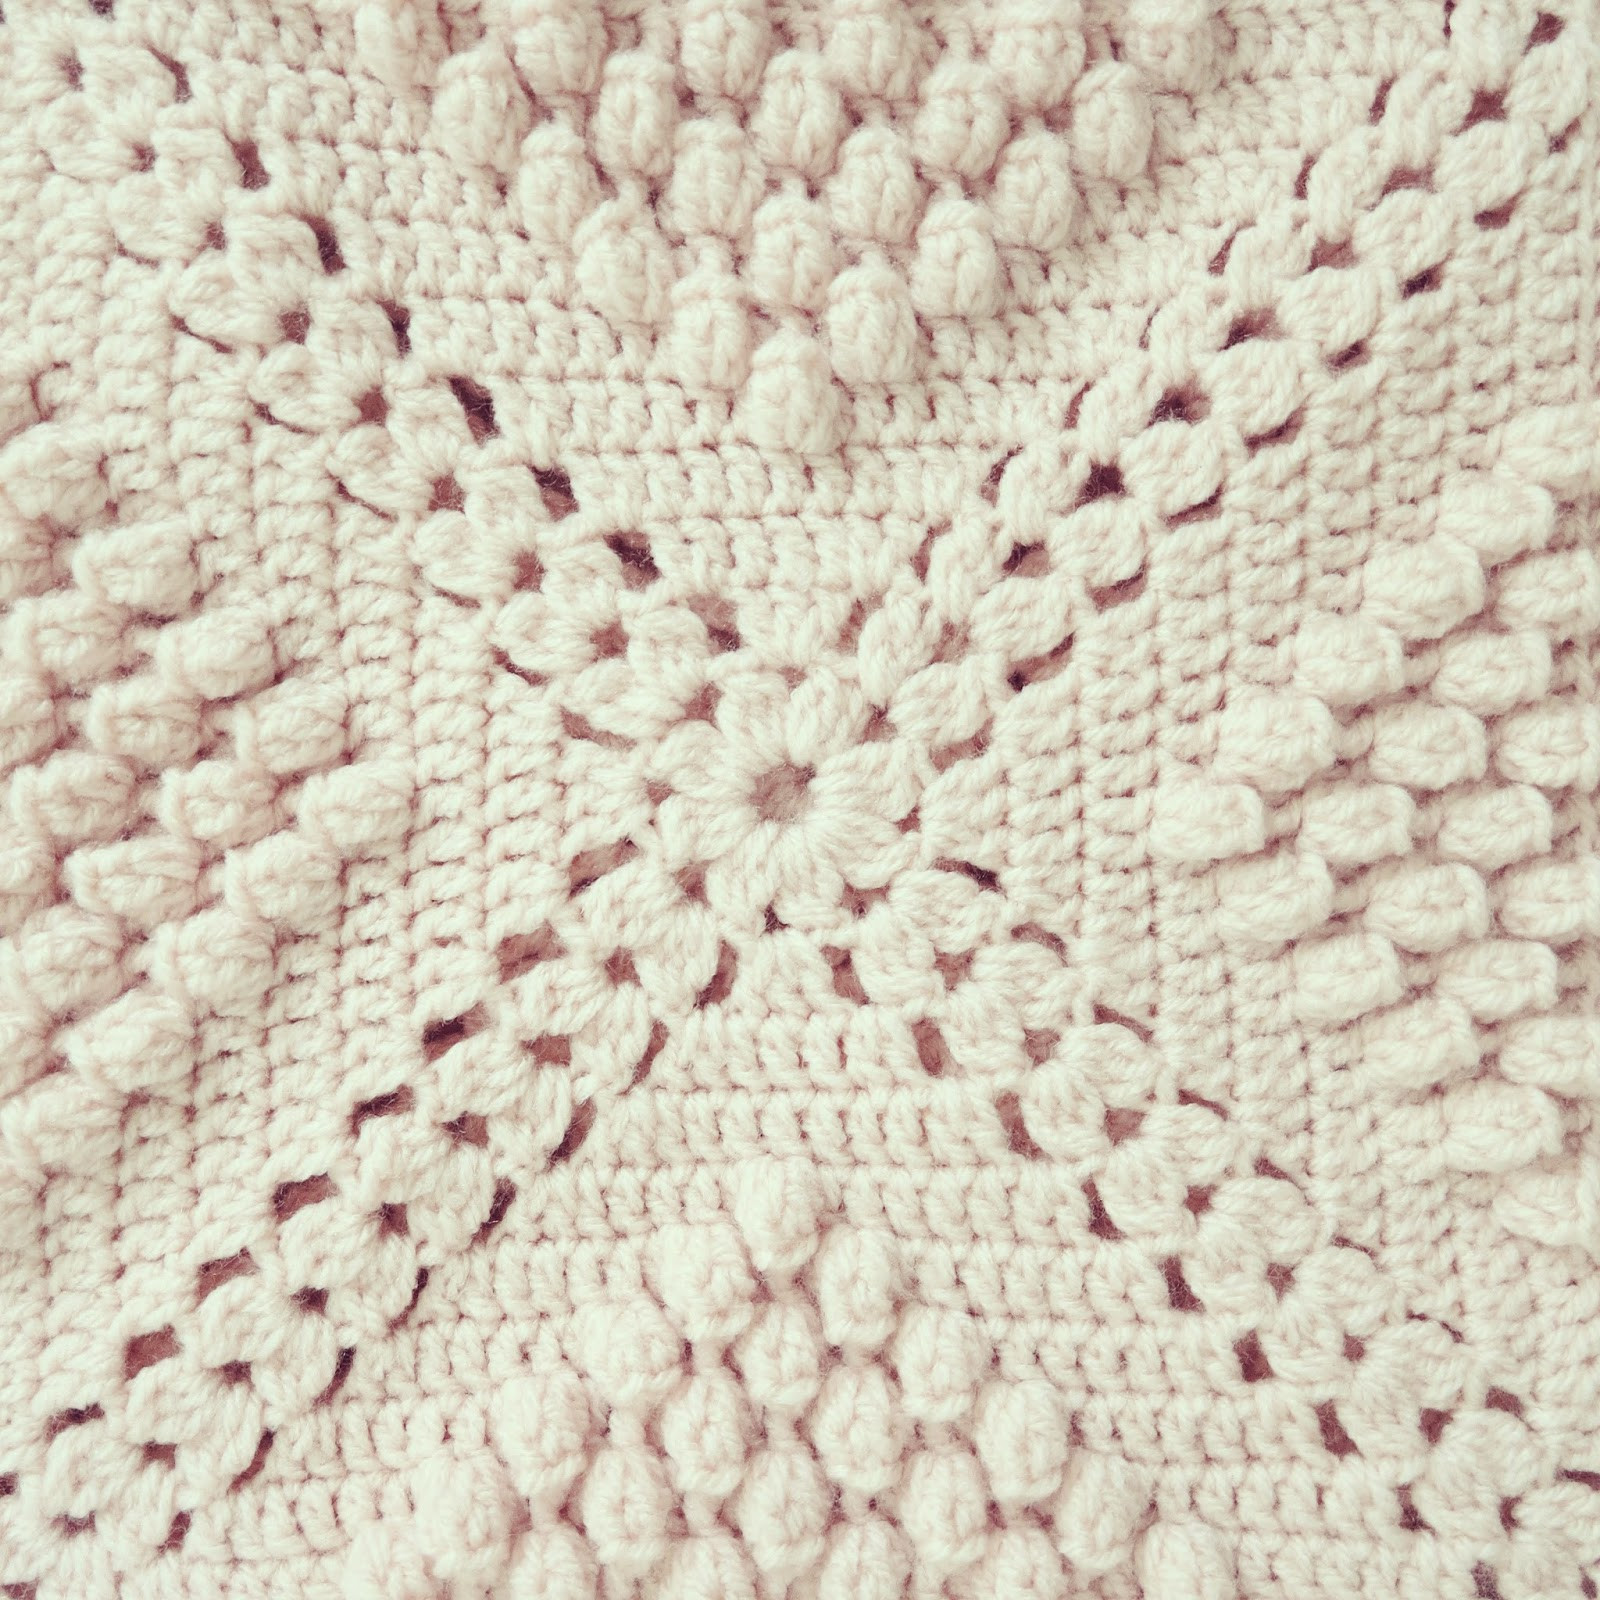 Inspirational byhaafner Crochet Pattern Popcorn Blanket Popcorn Stitch Crochet Patterns Of Best Of How to Crochet Lazy Popcorn Stitch No Removing Your Hook Popcorn Stitch Crochet Patterns